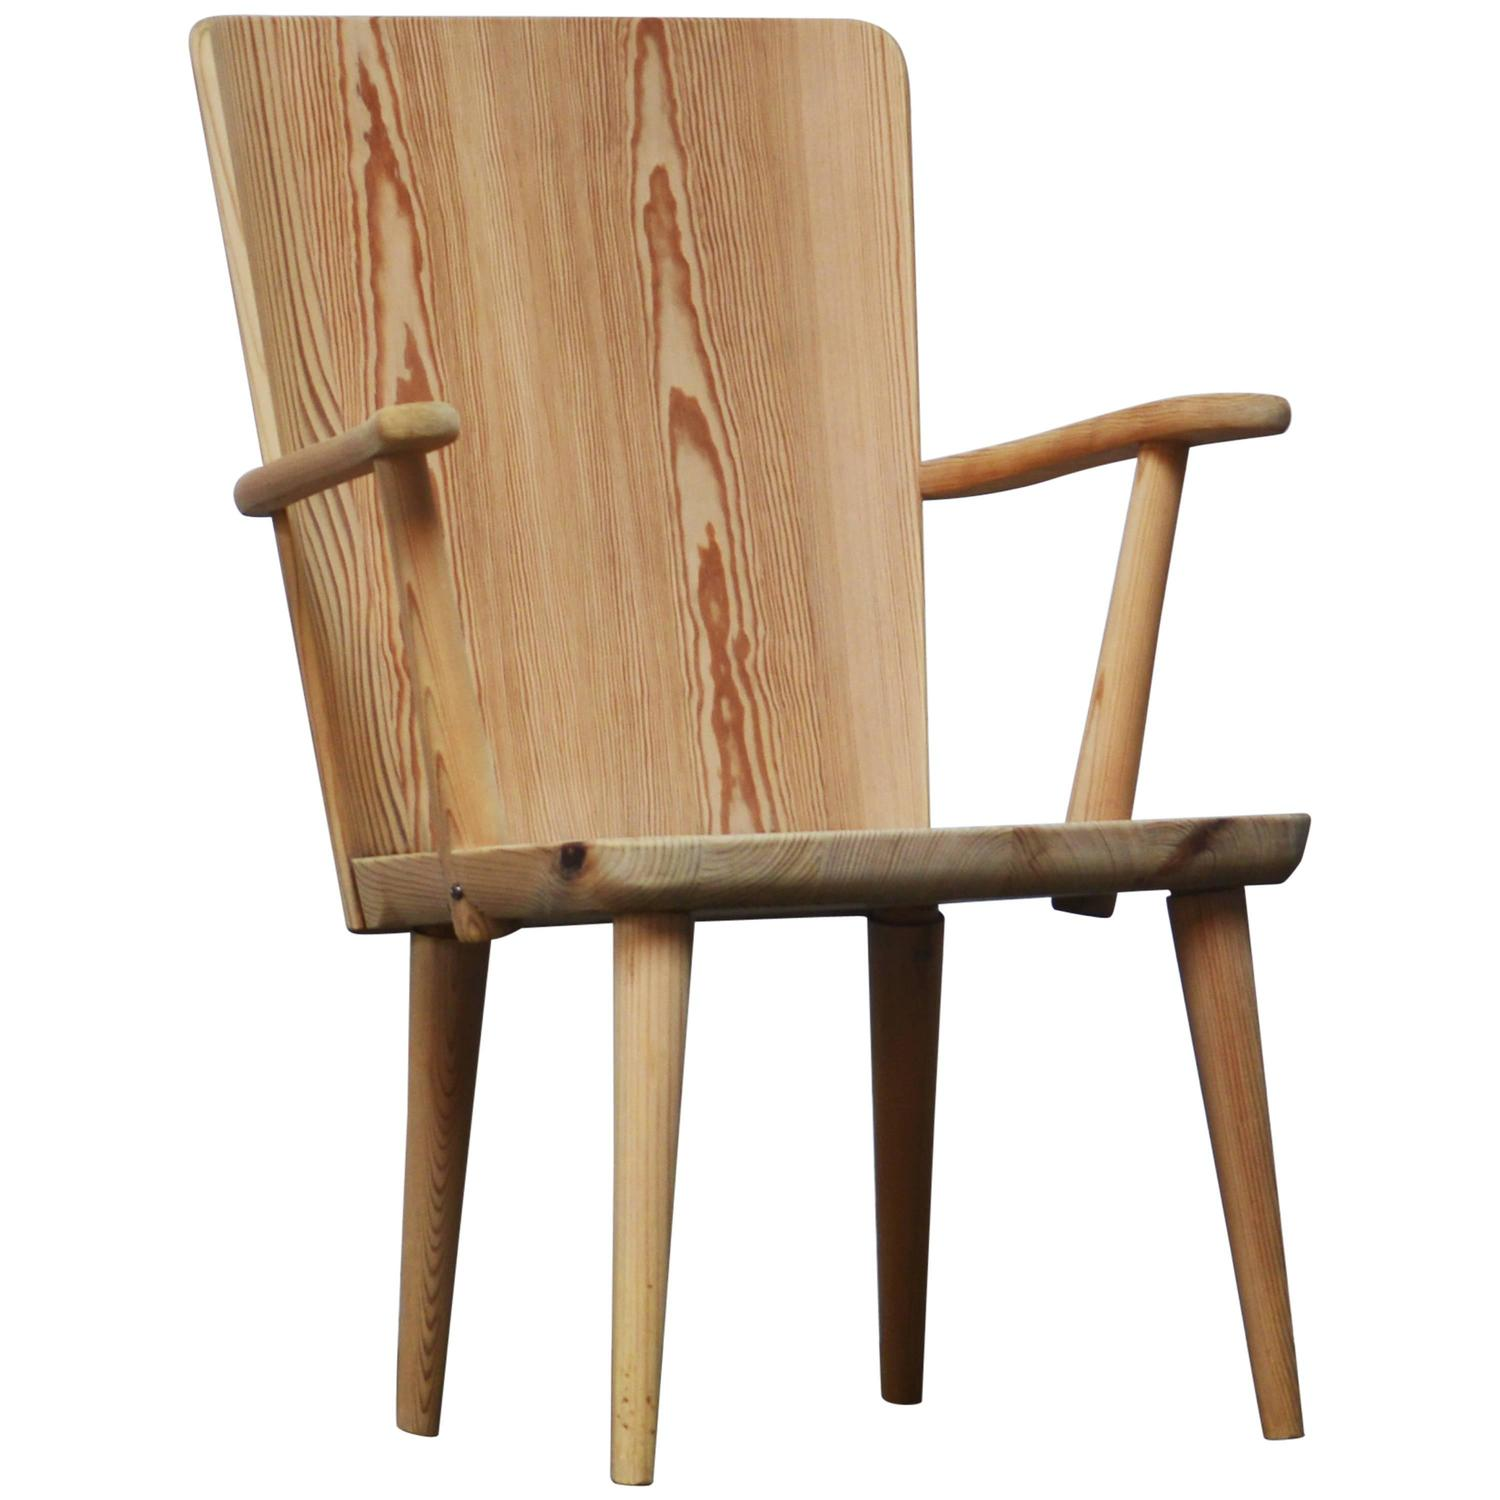 Goran Malmvall Pine Chair Made By Svenskt Fur, Sweden, 1940s At 1stdibs